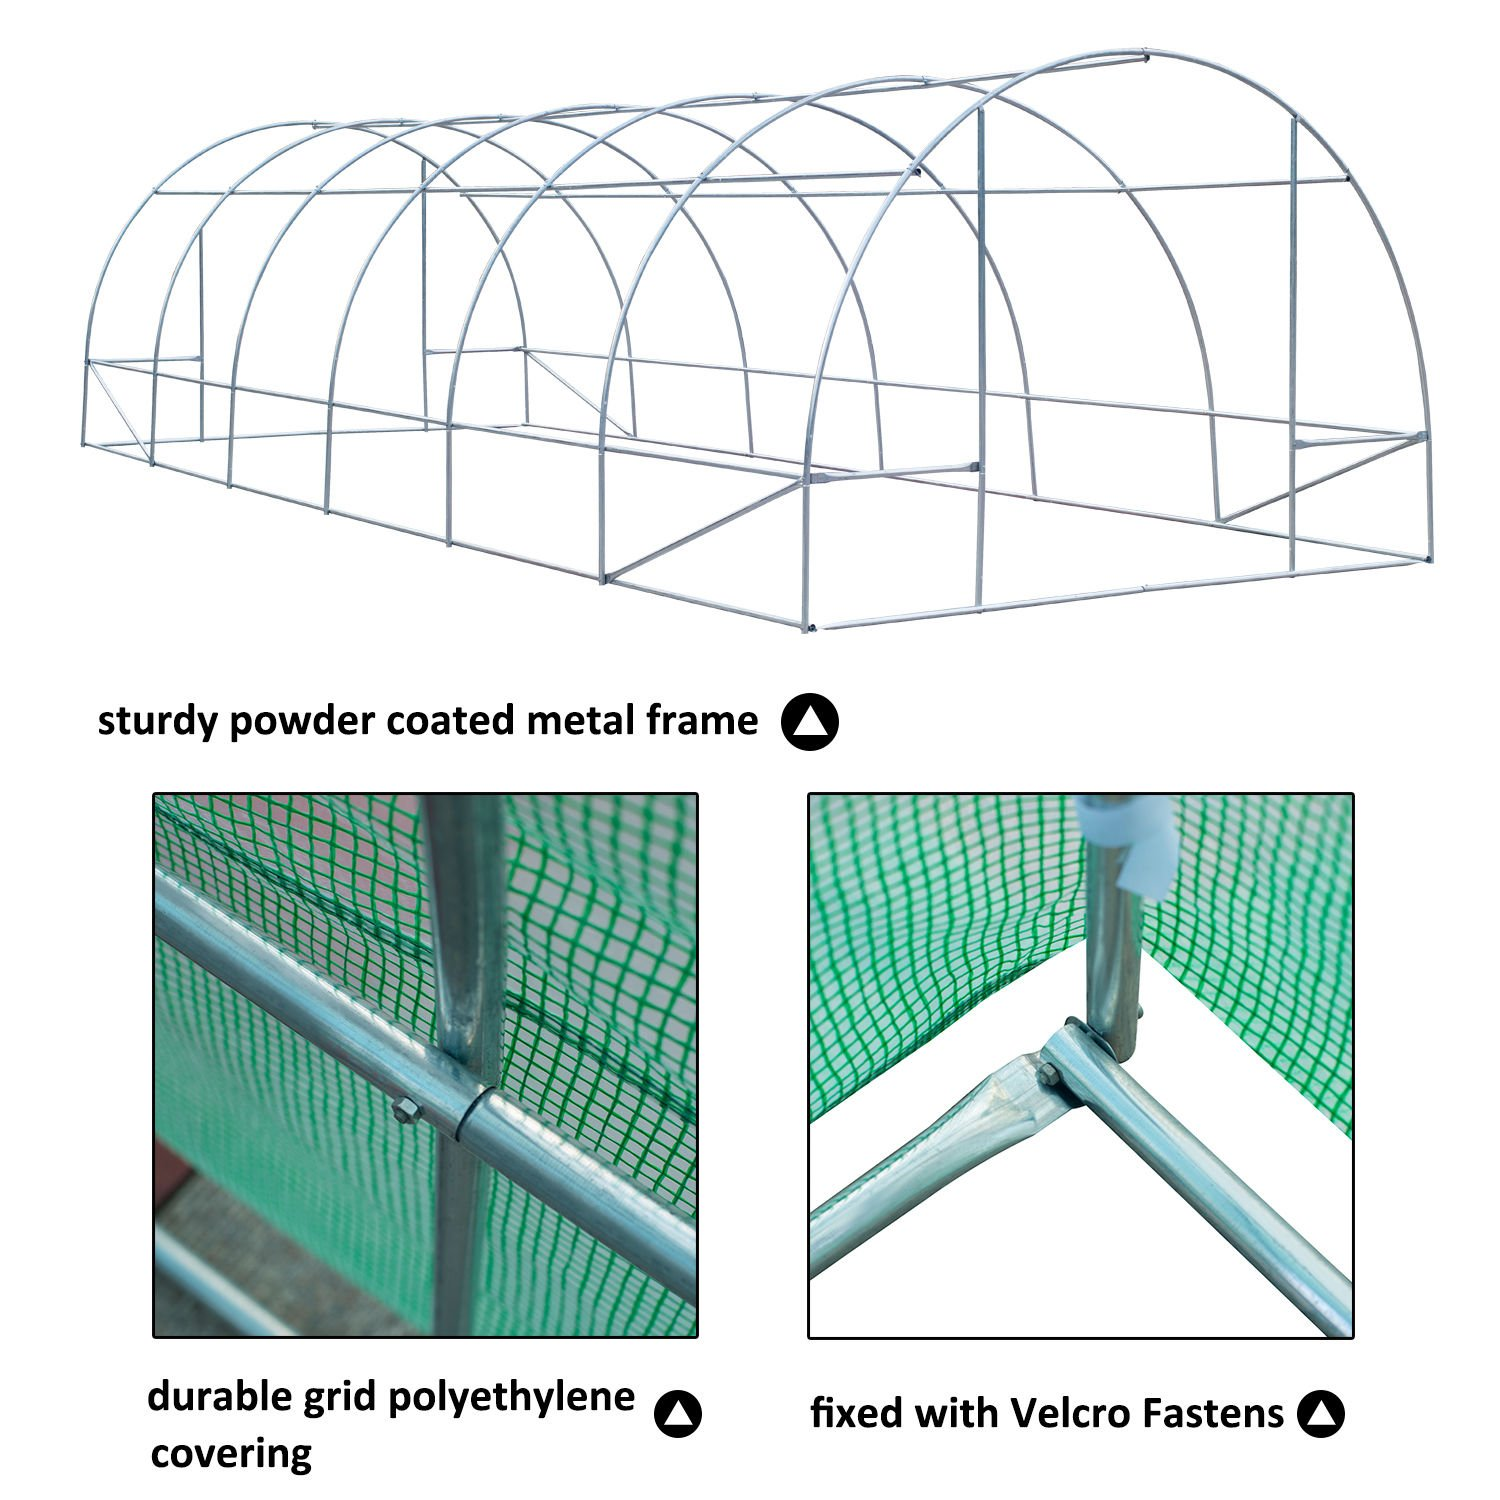 Outsunny 26' x 10' x 7' Portable Walk-in Garden Greenhouse - Deep Green by Outsunny (Image #3)